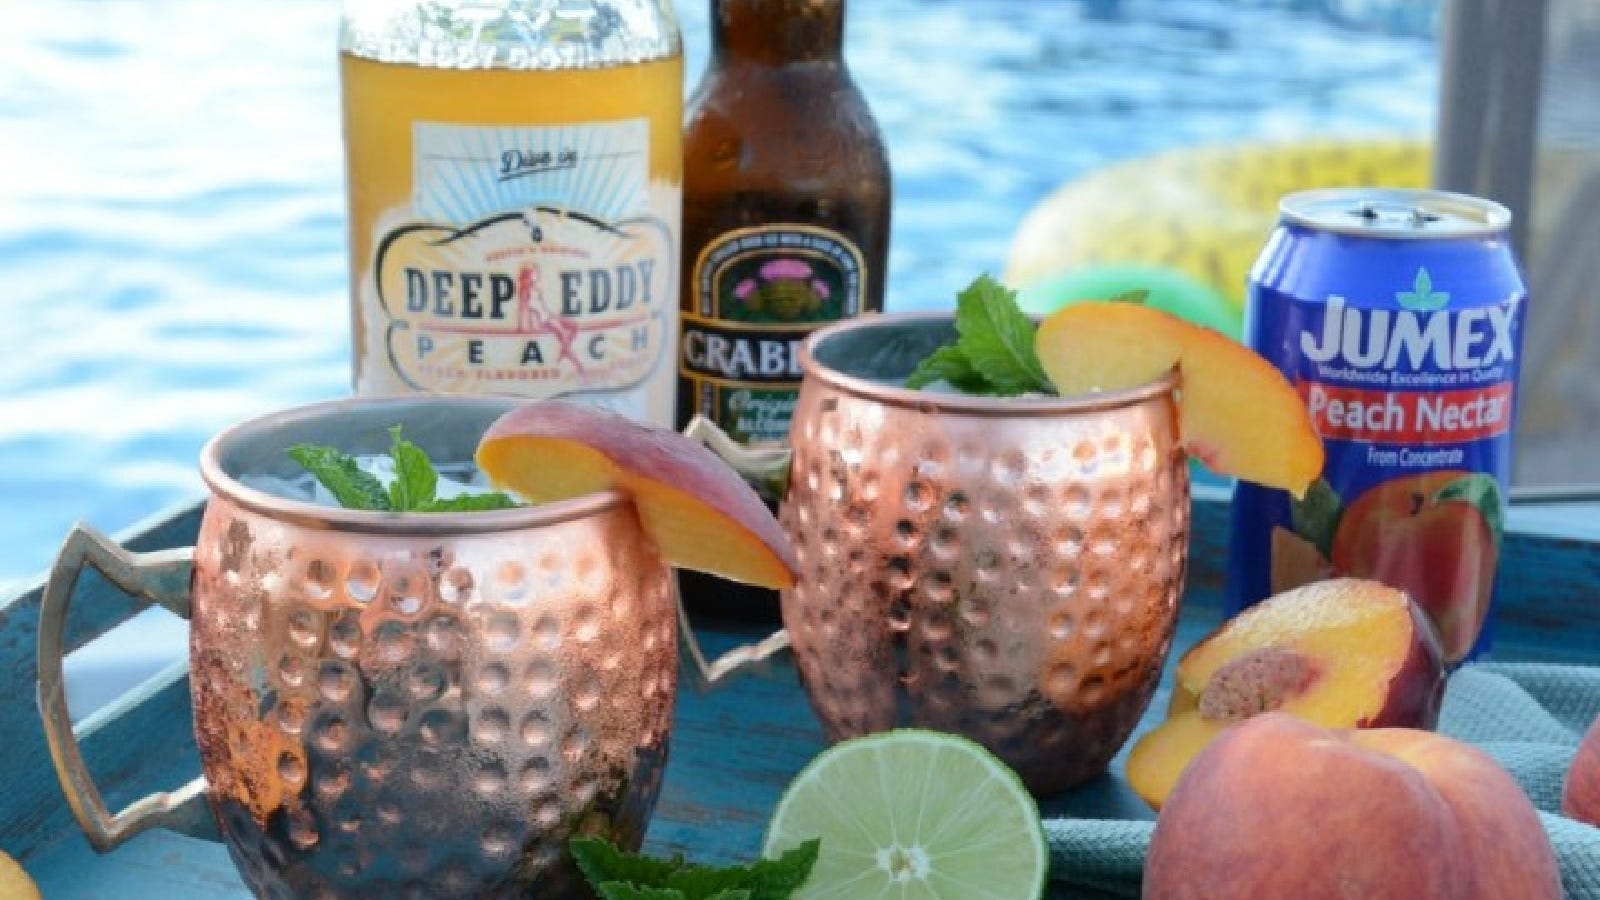 Two mule mugs filled with peach moscow mules, with peach vodka, ginger beer and peach nectar in the background.